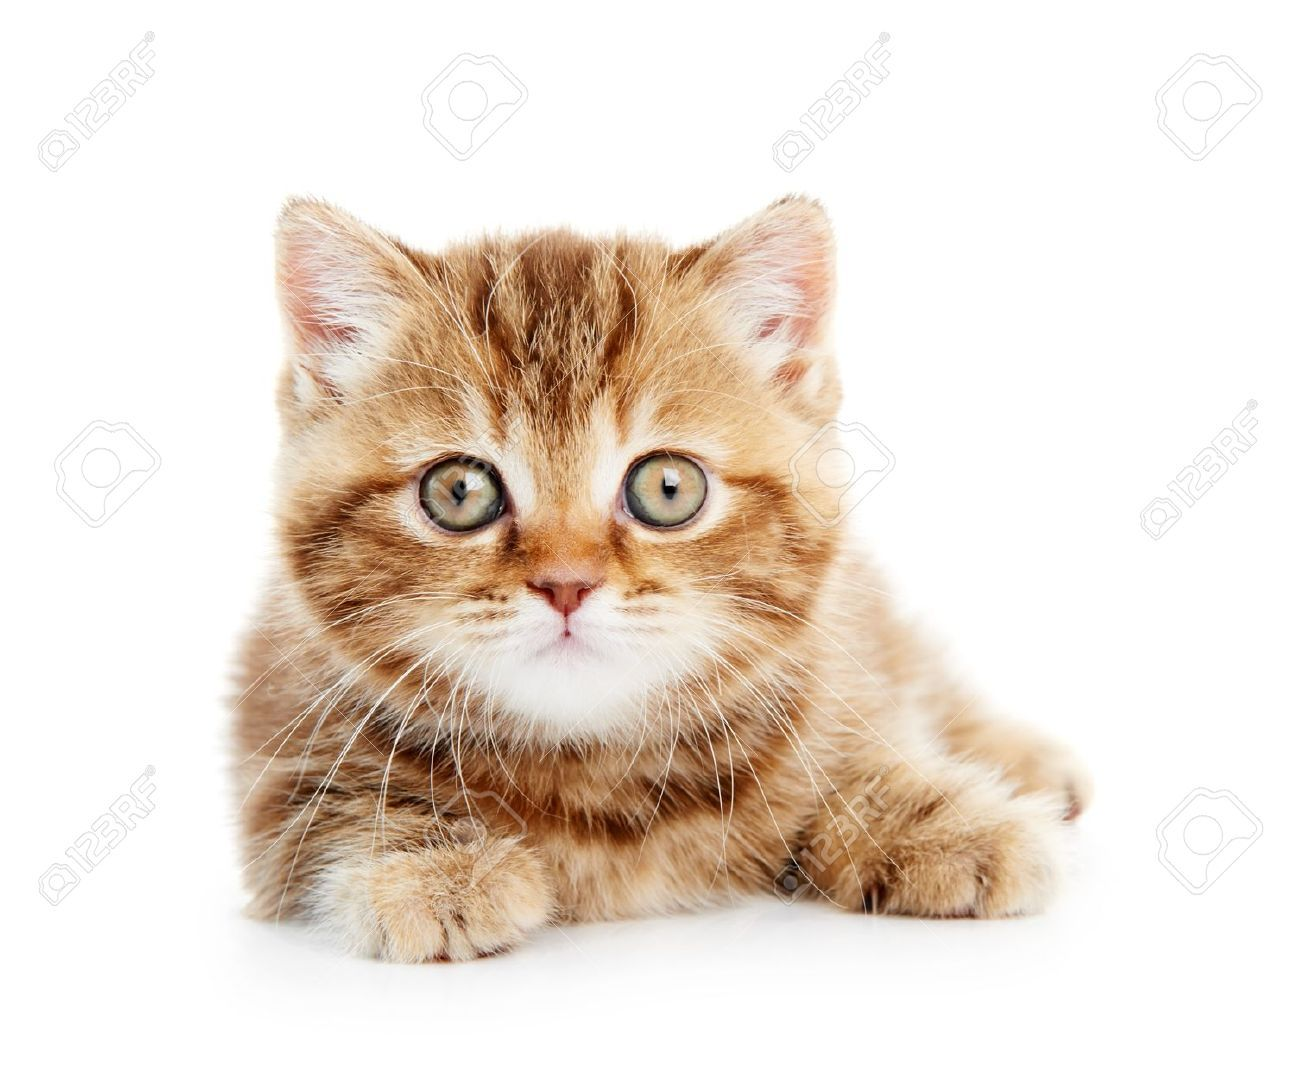 british shorthair kittens golden tabby Google Search